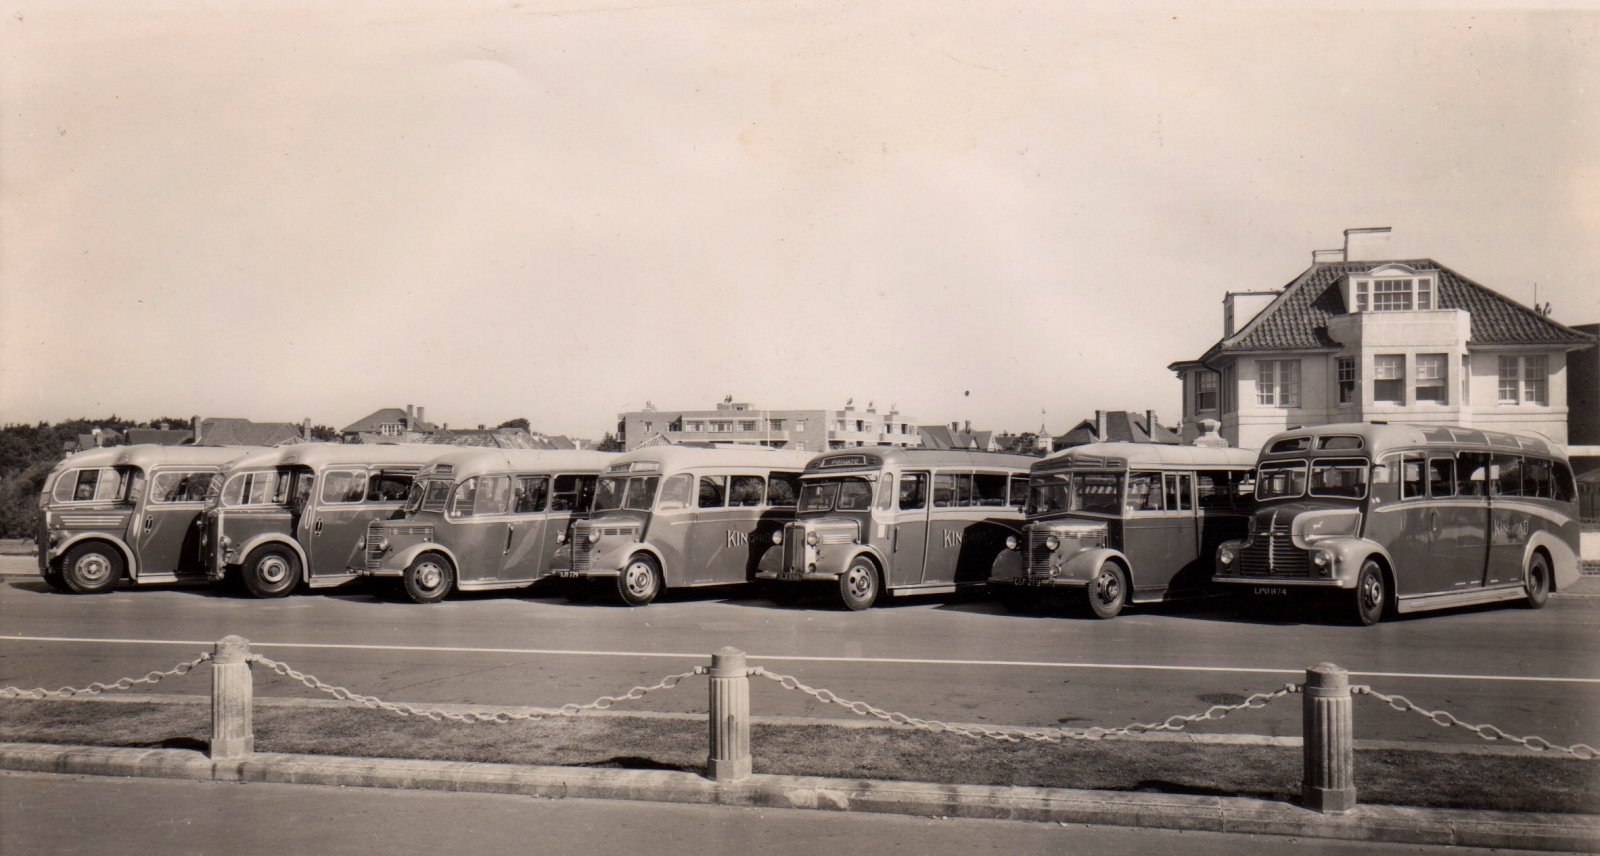 Click image for larger version  Name:King of the Road 1950.jpg Views:44 Size:189.1 KB ID:248975